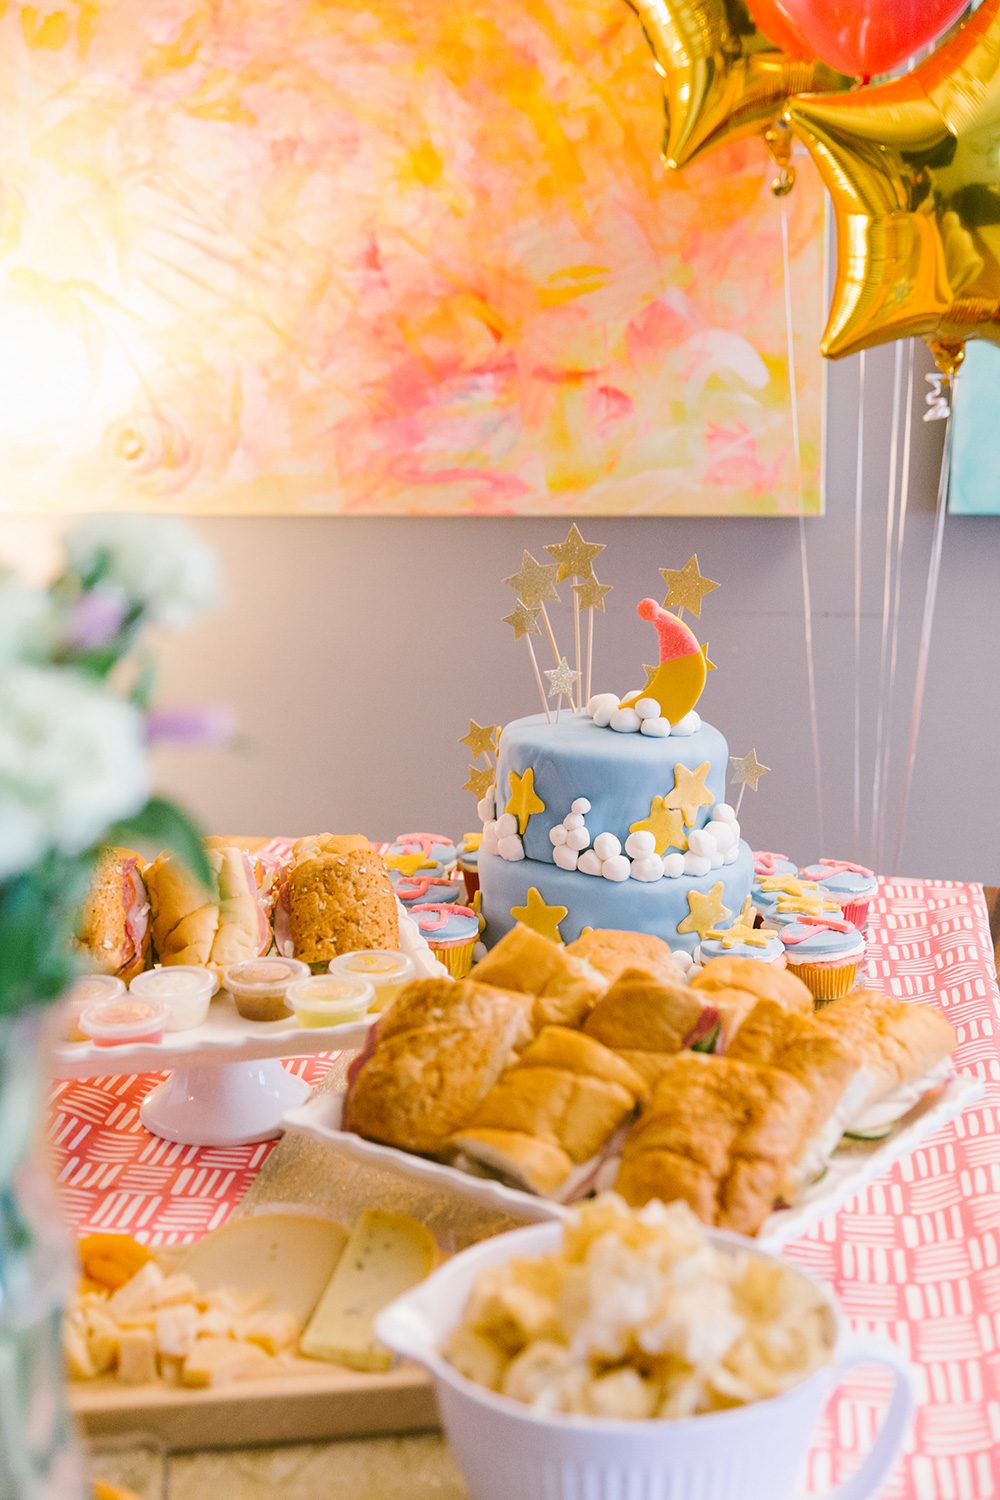 WEB_2015_April_BabyShower_EuniceDockery_0025.jpg